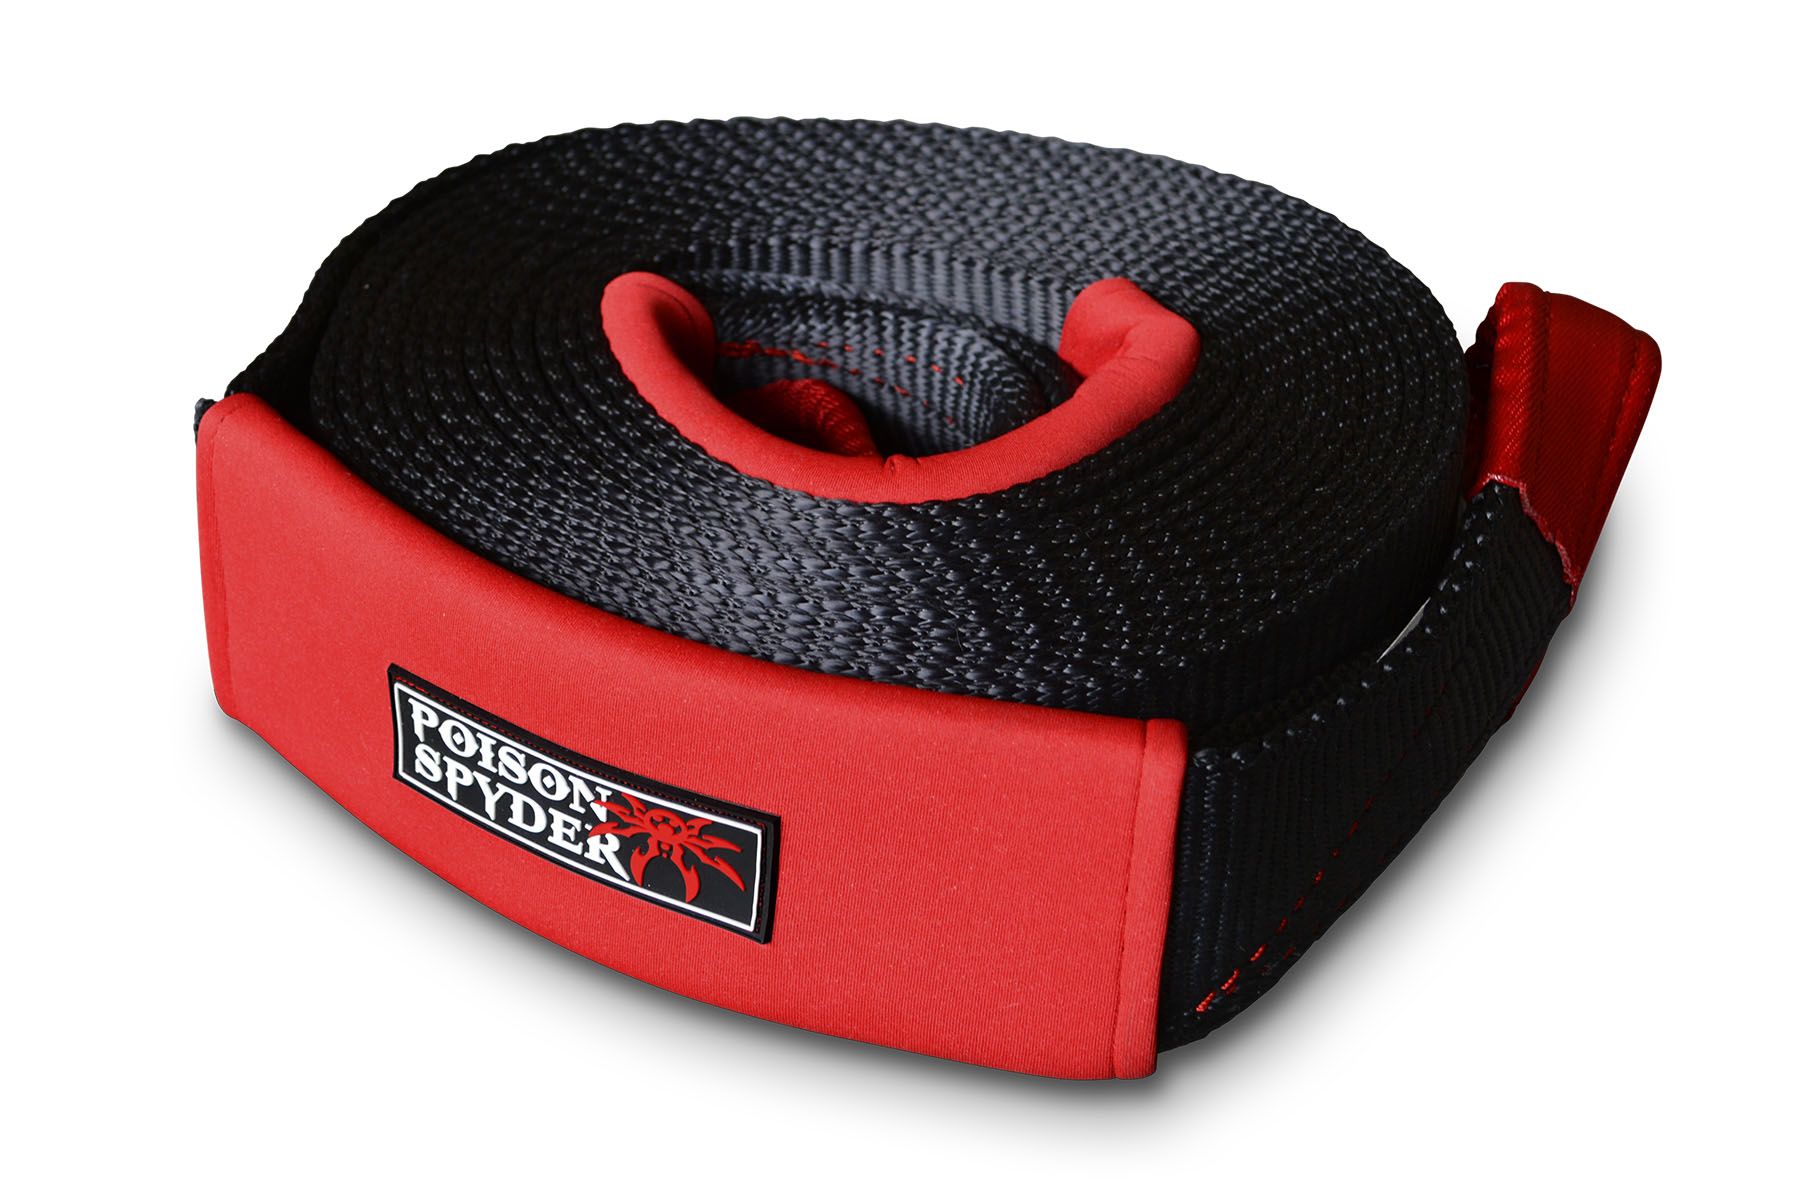 Poison Spyder 30ft x 3in Recovery Strap